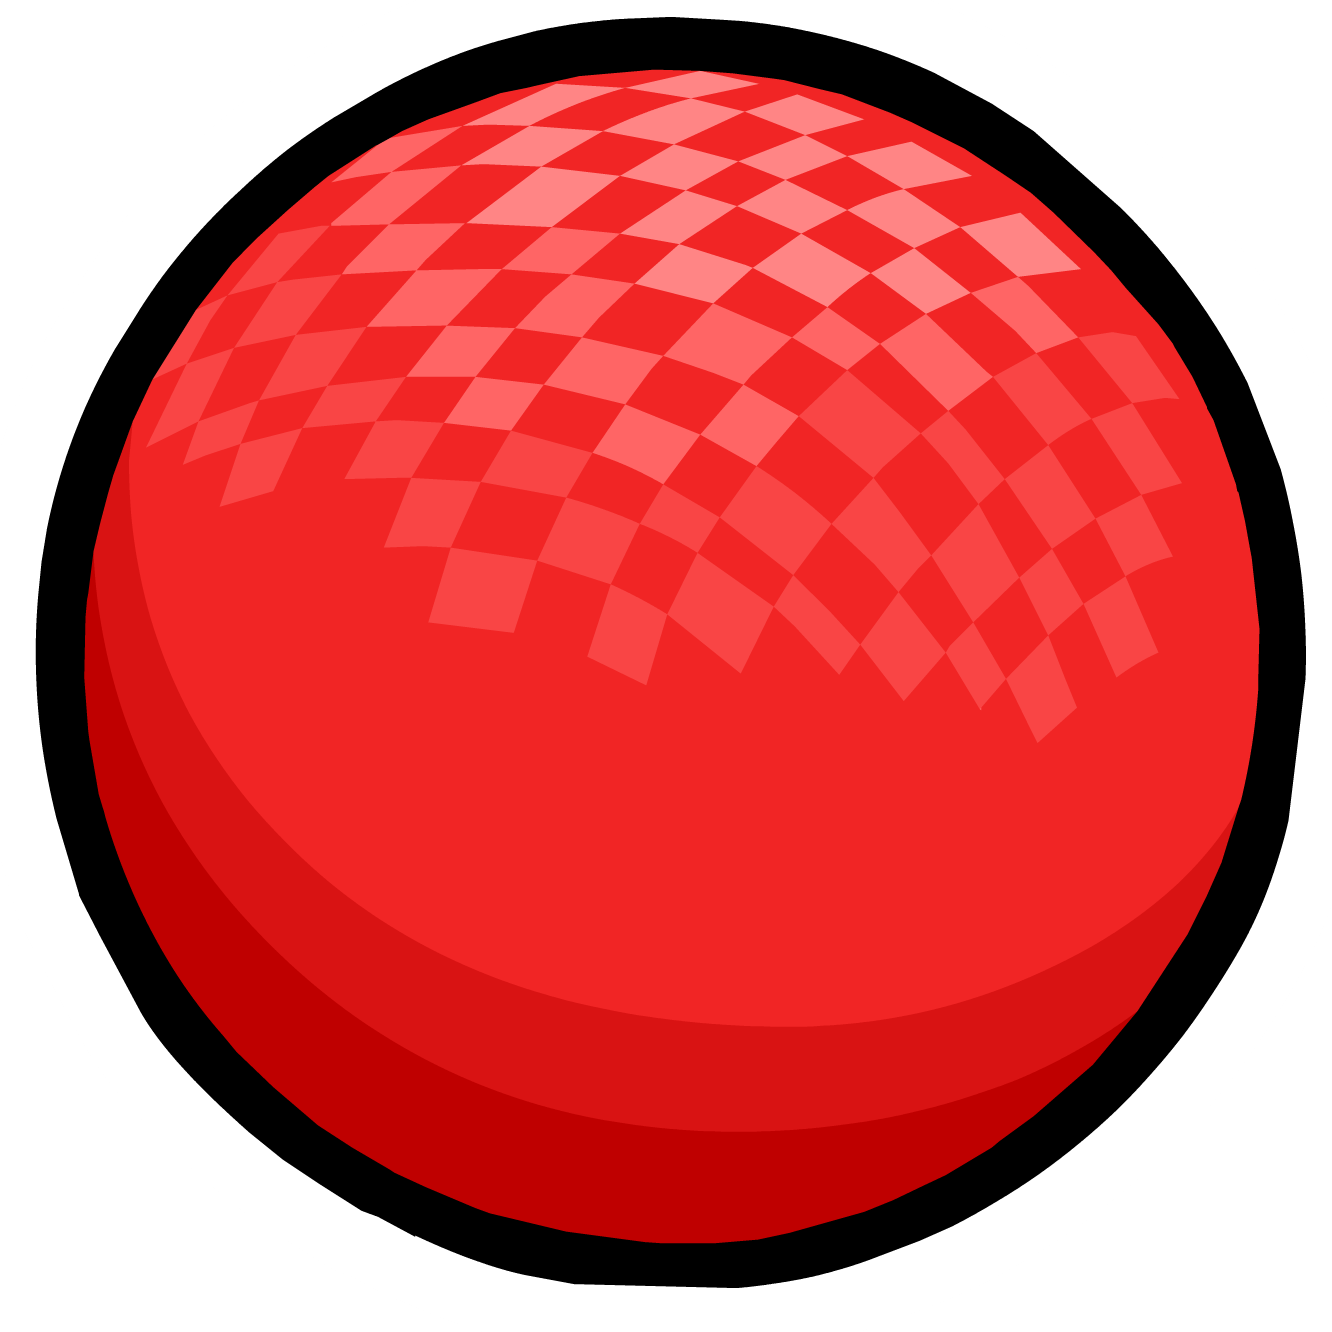 jpg royalty free stock Petition Make Dodgeball a Professional sport